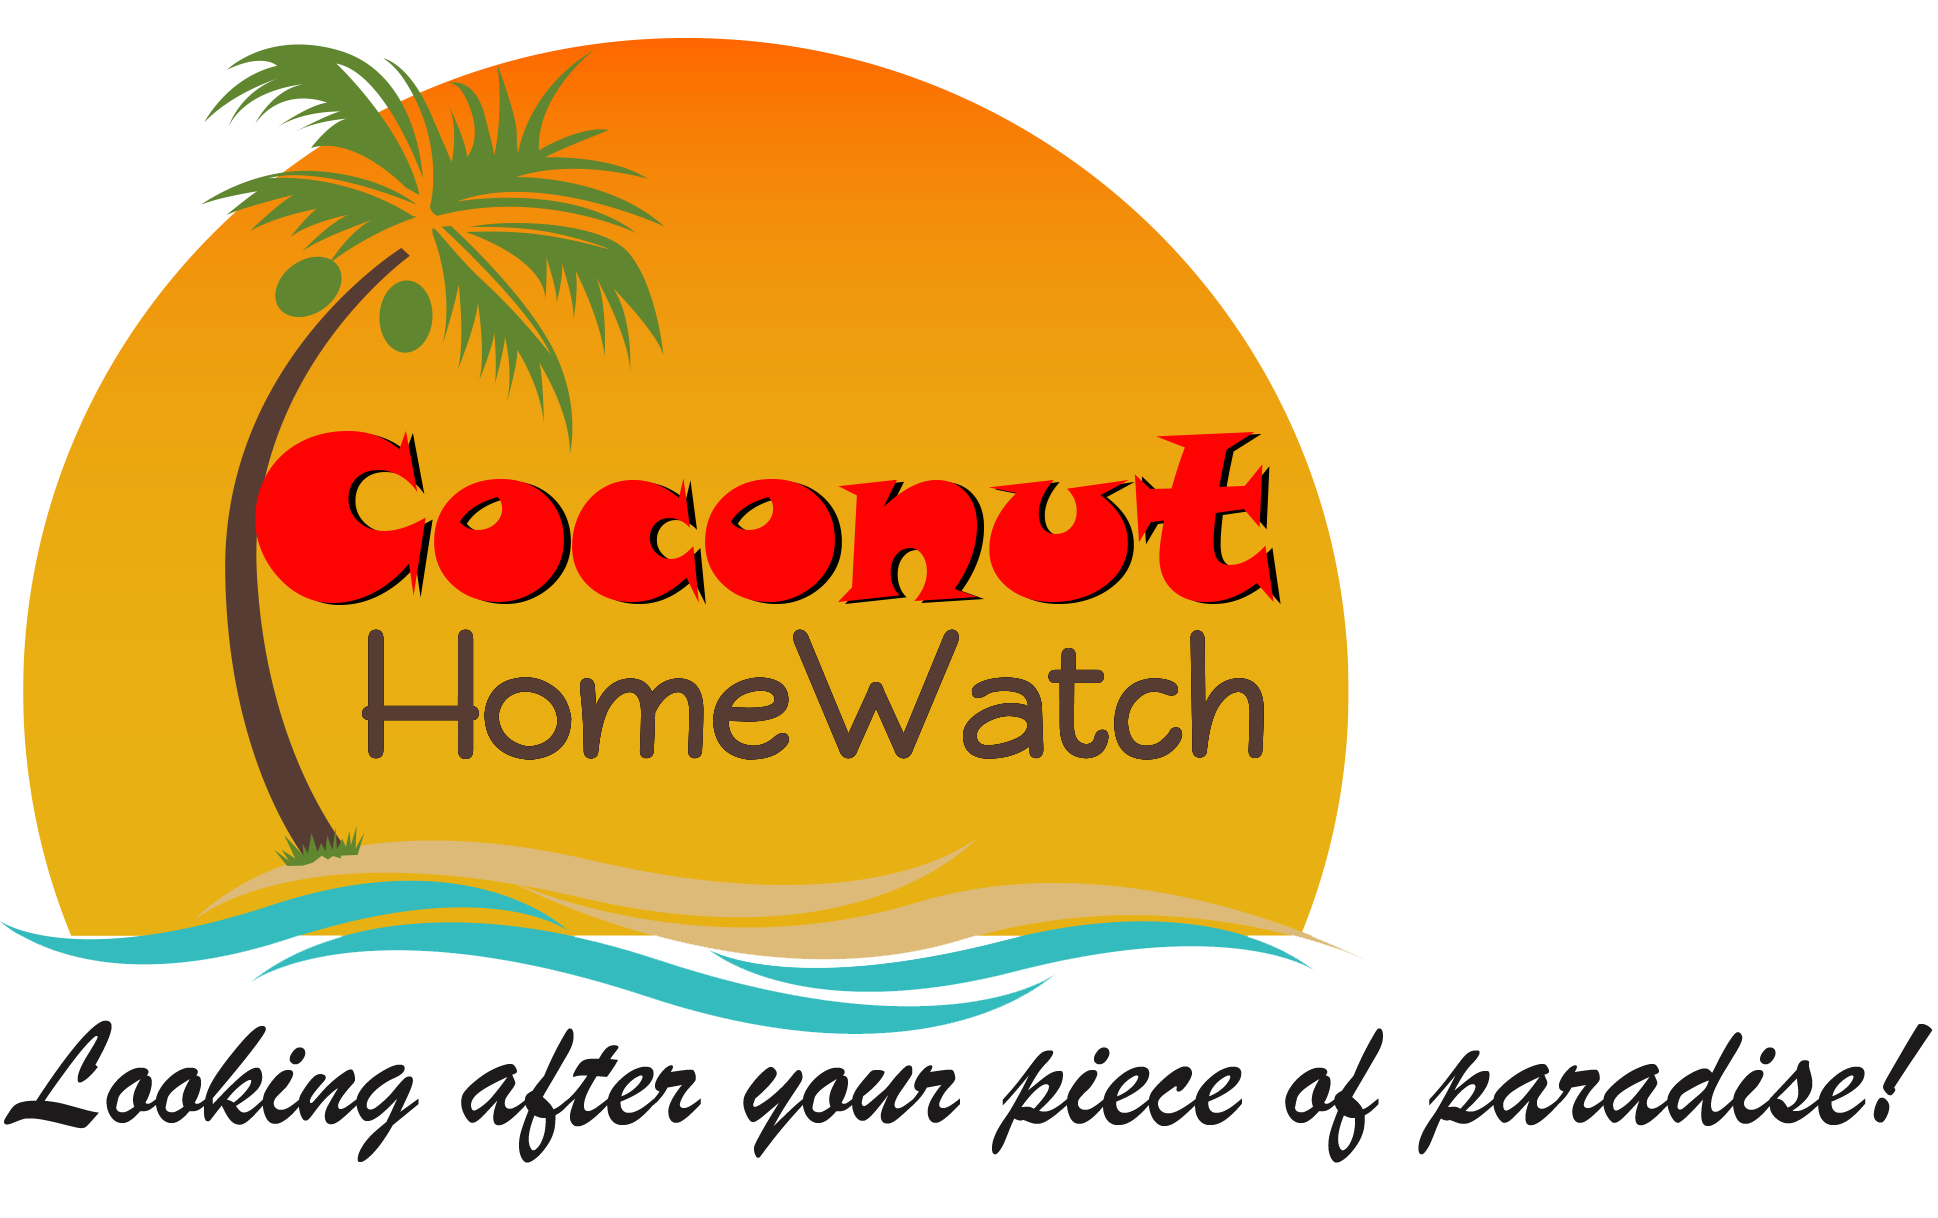 Coconut Home Watch